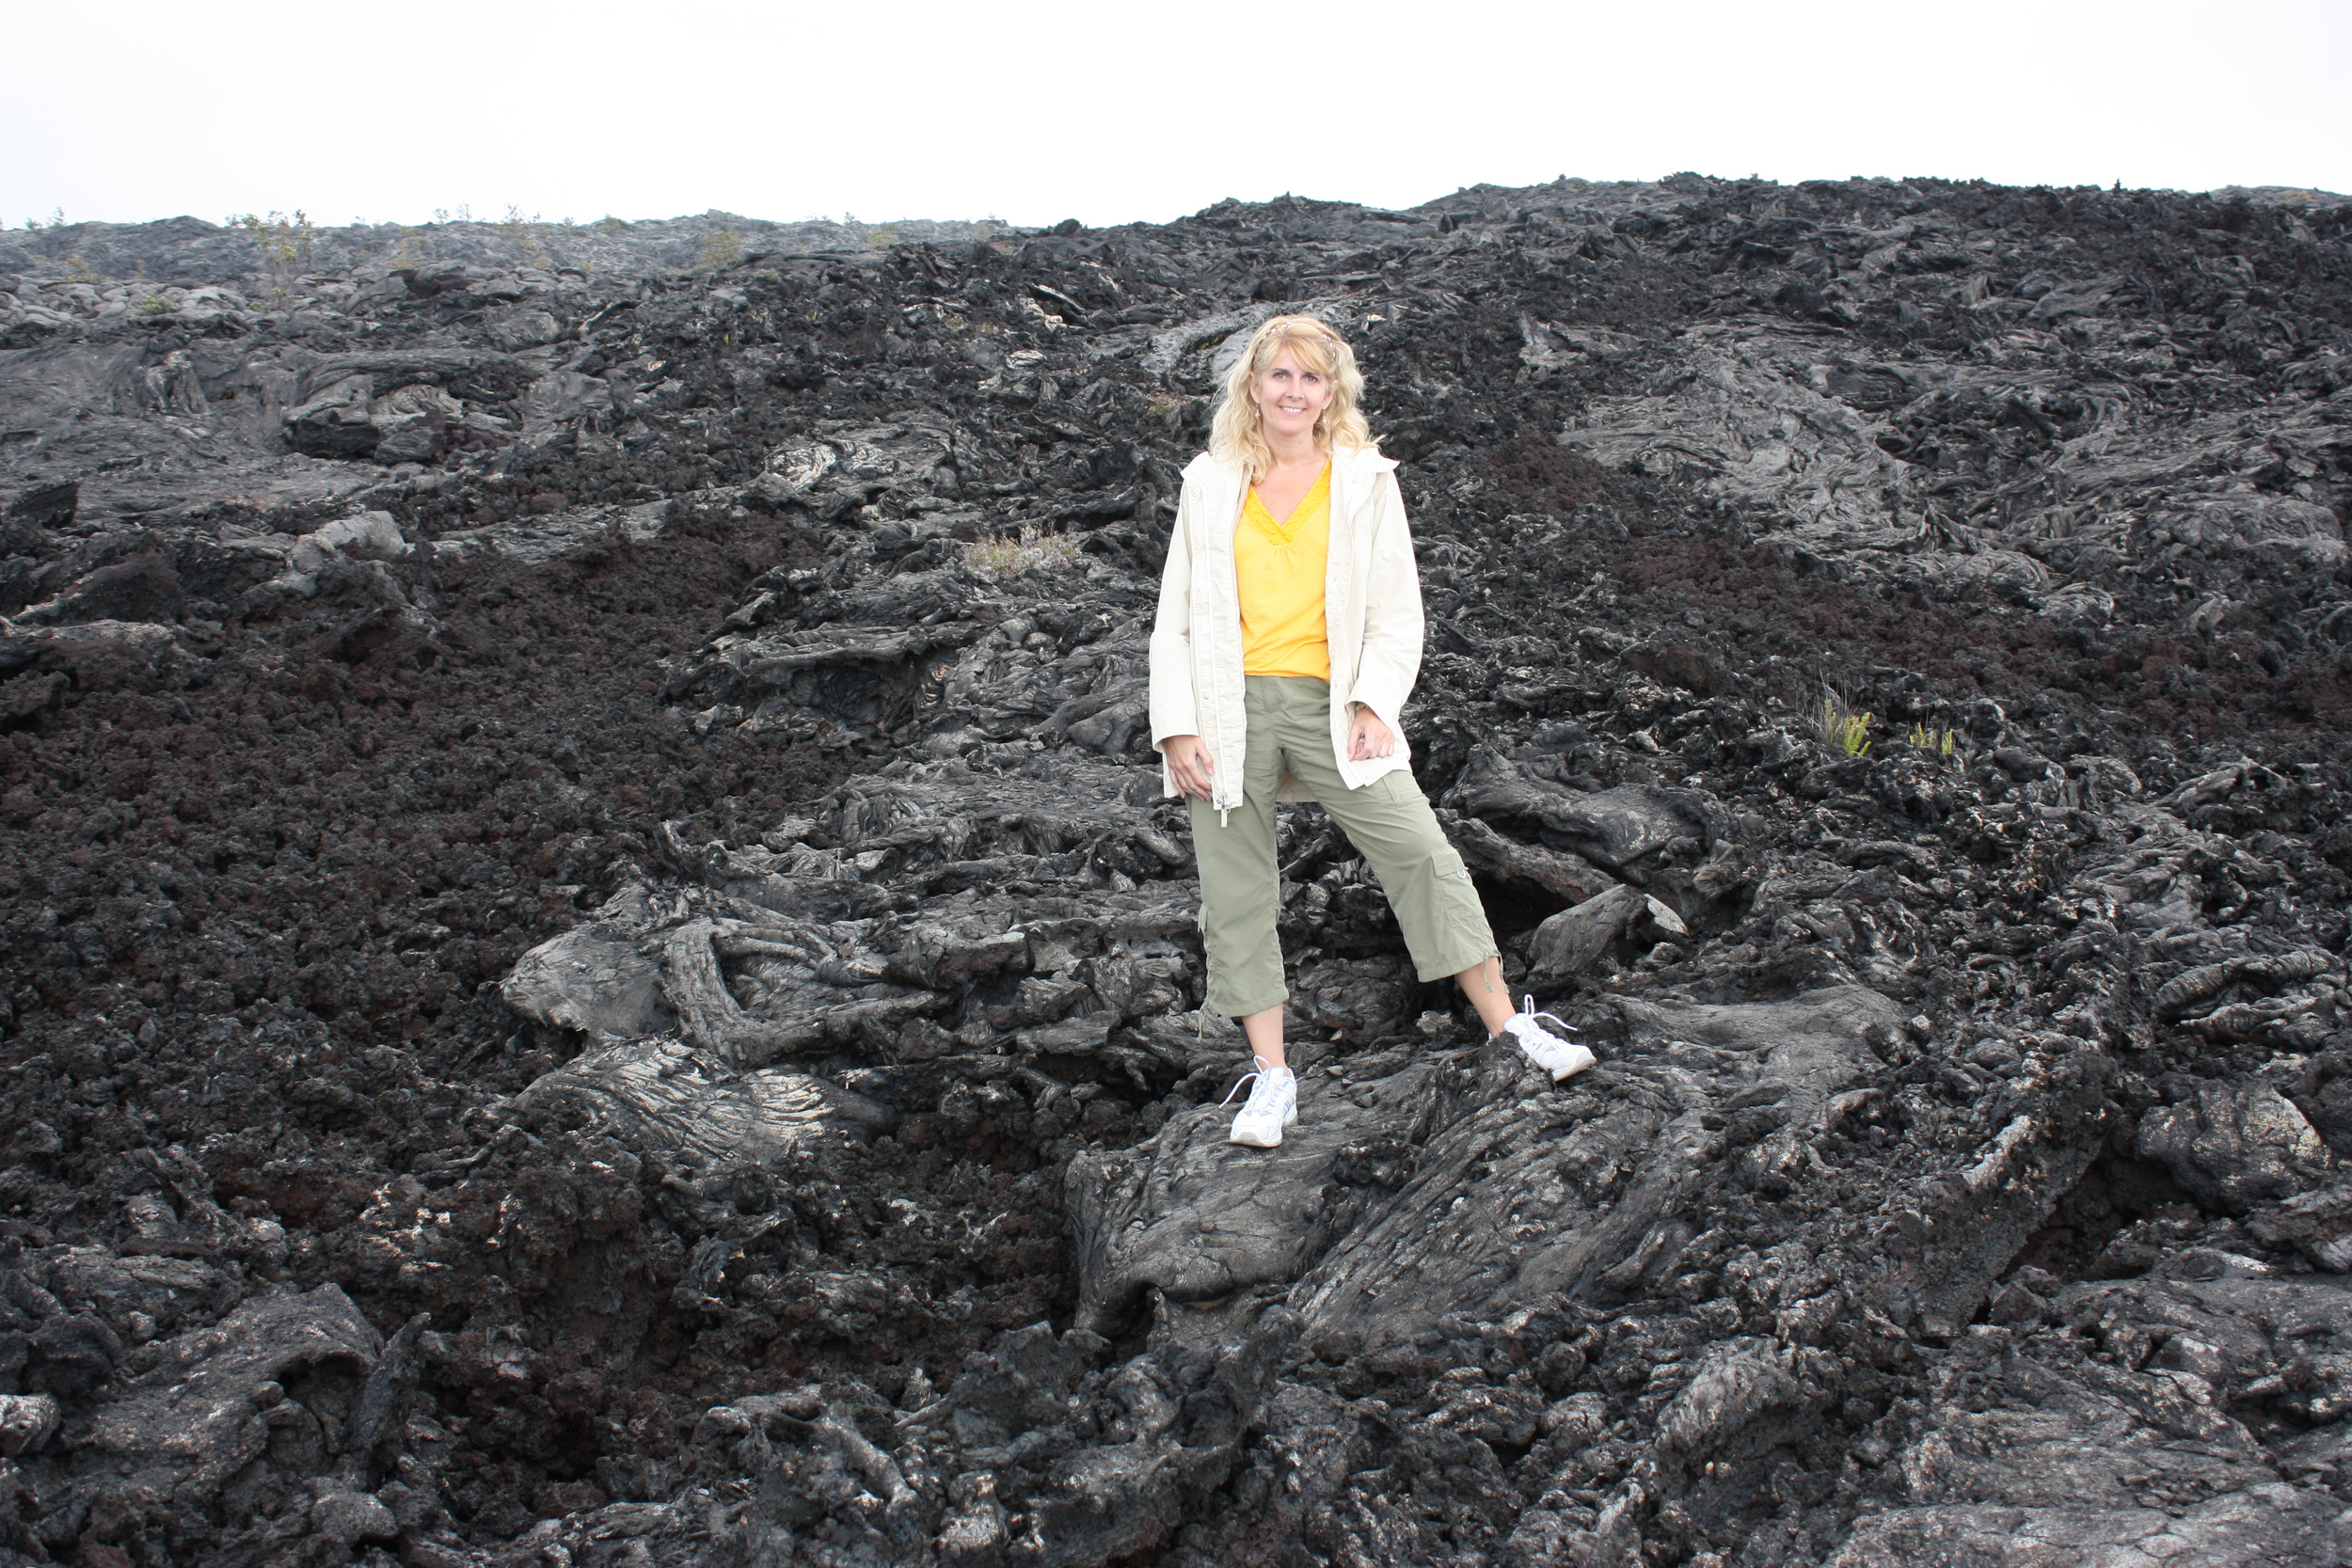 Lava anyone? If you need any, you can find plenty on Chain of Craters Road in the Volcanoes National Park.